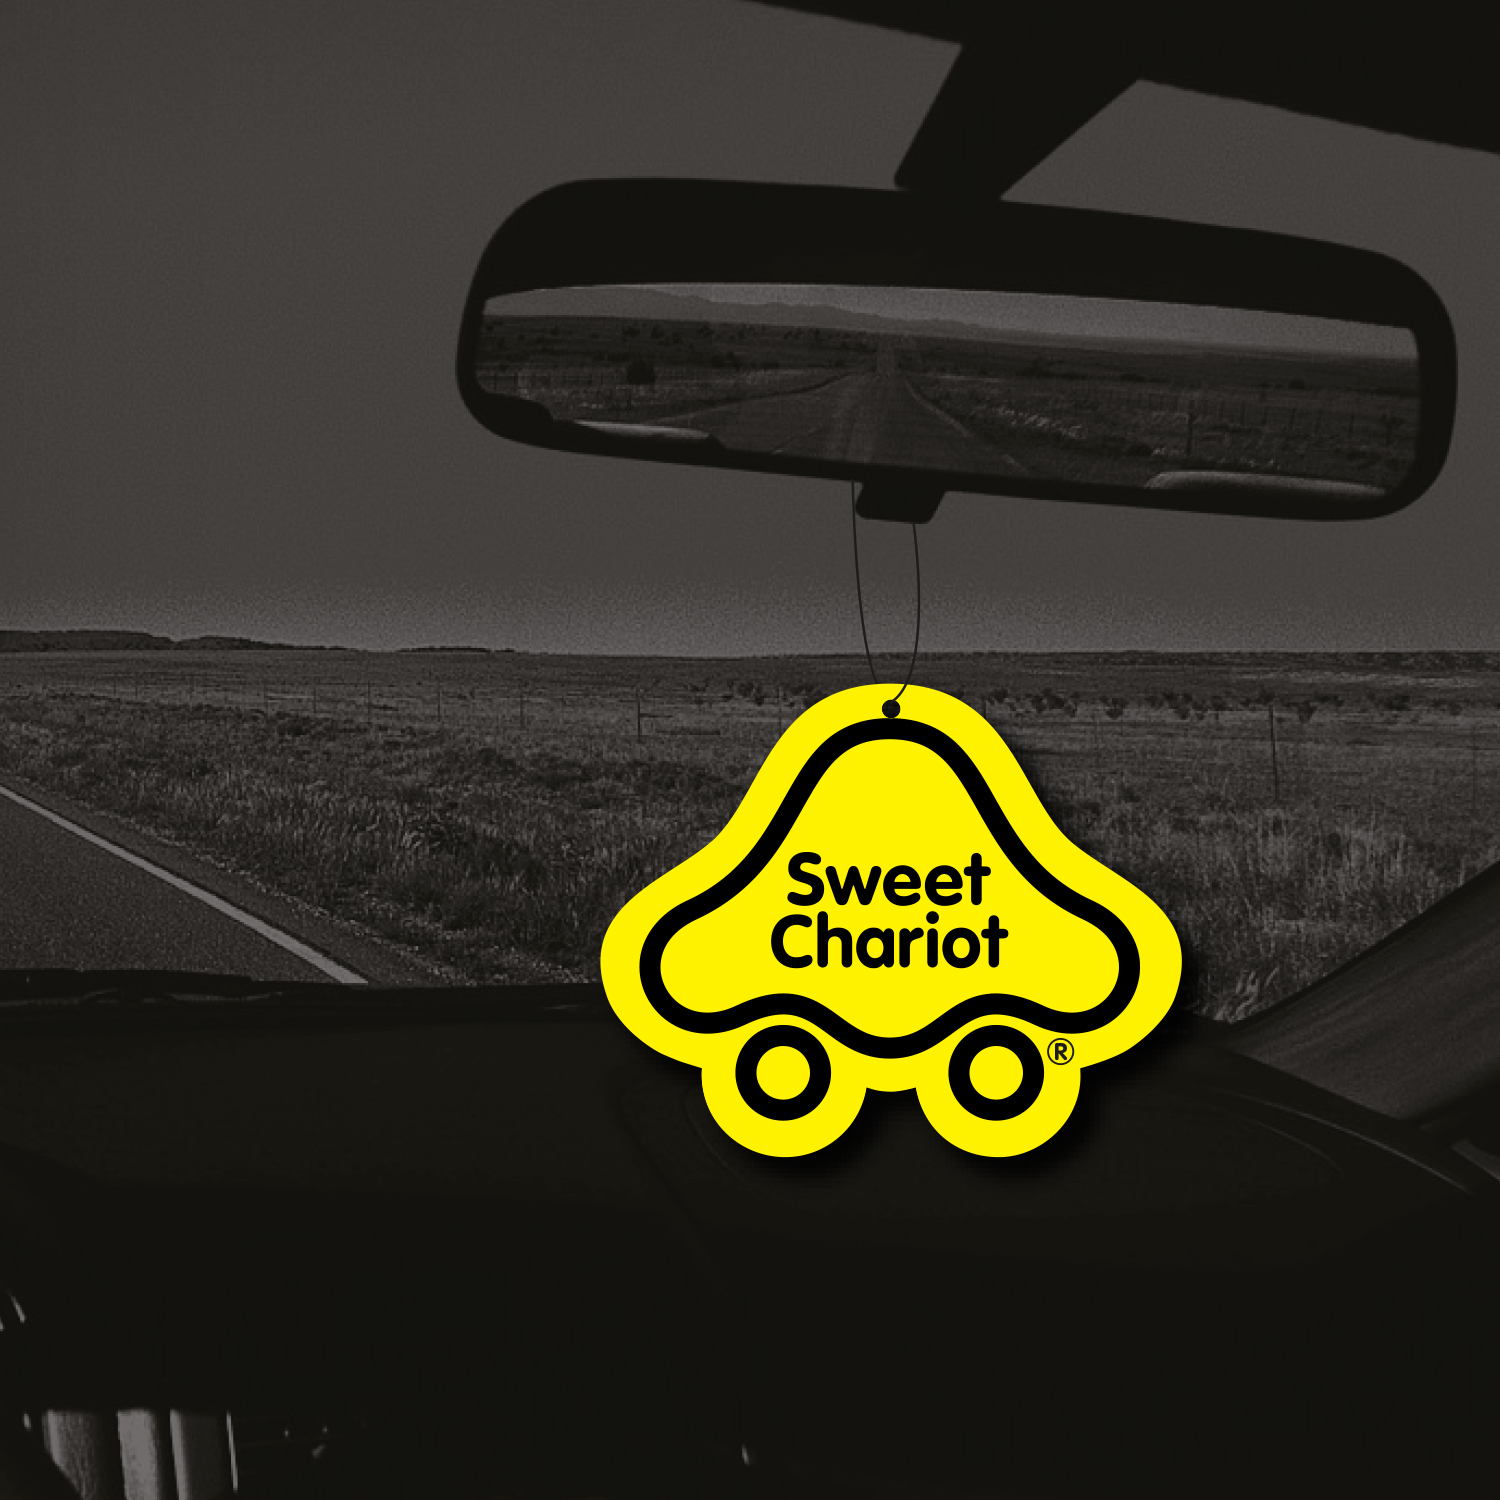 Thumbnail for Sweet Chariot Car Fresheners